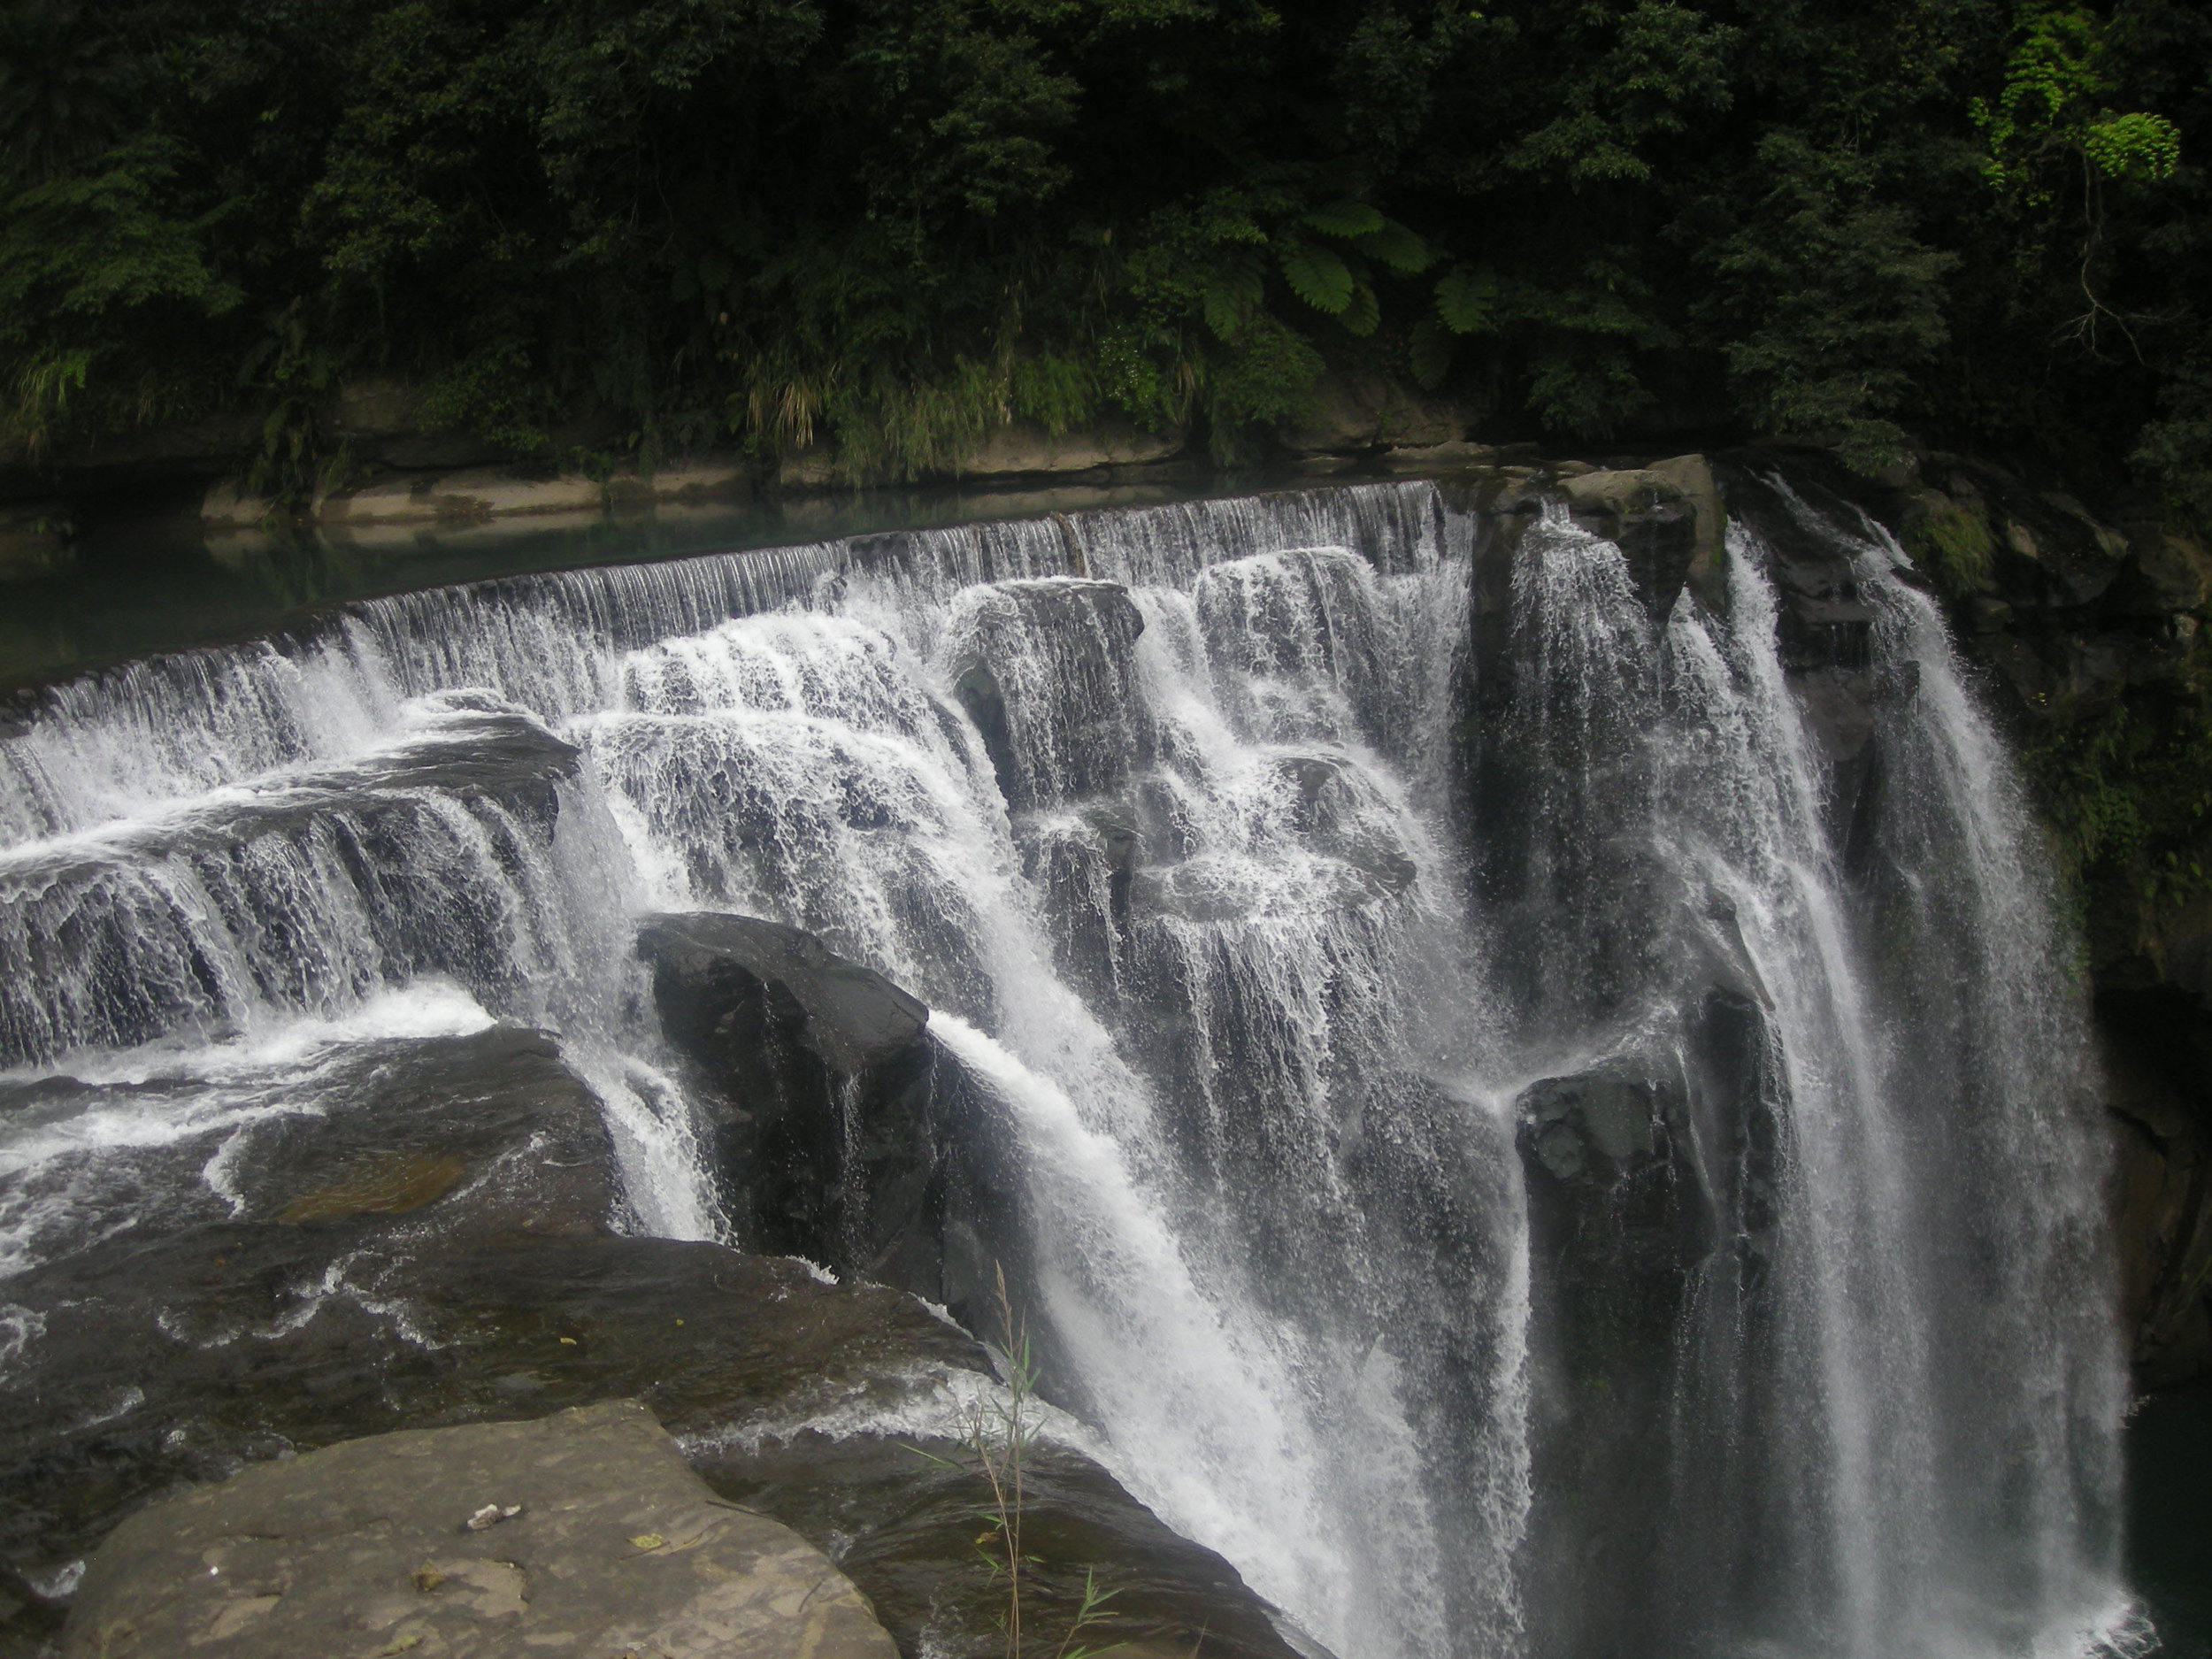 Eyeglasses waterfall 2.jpg